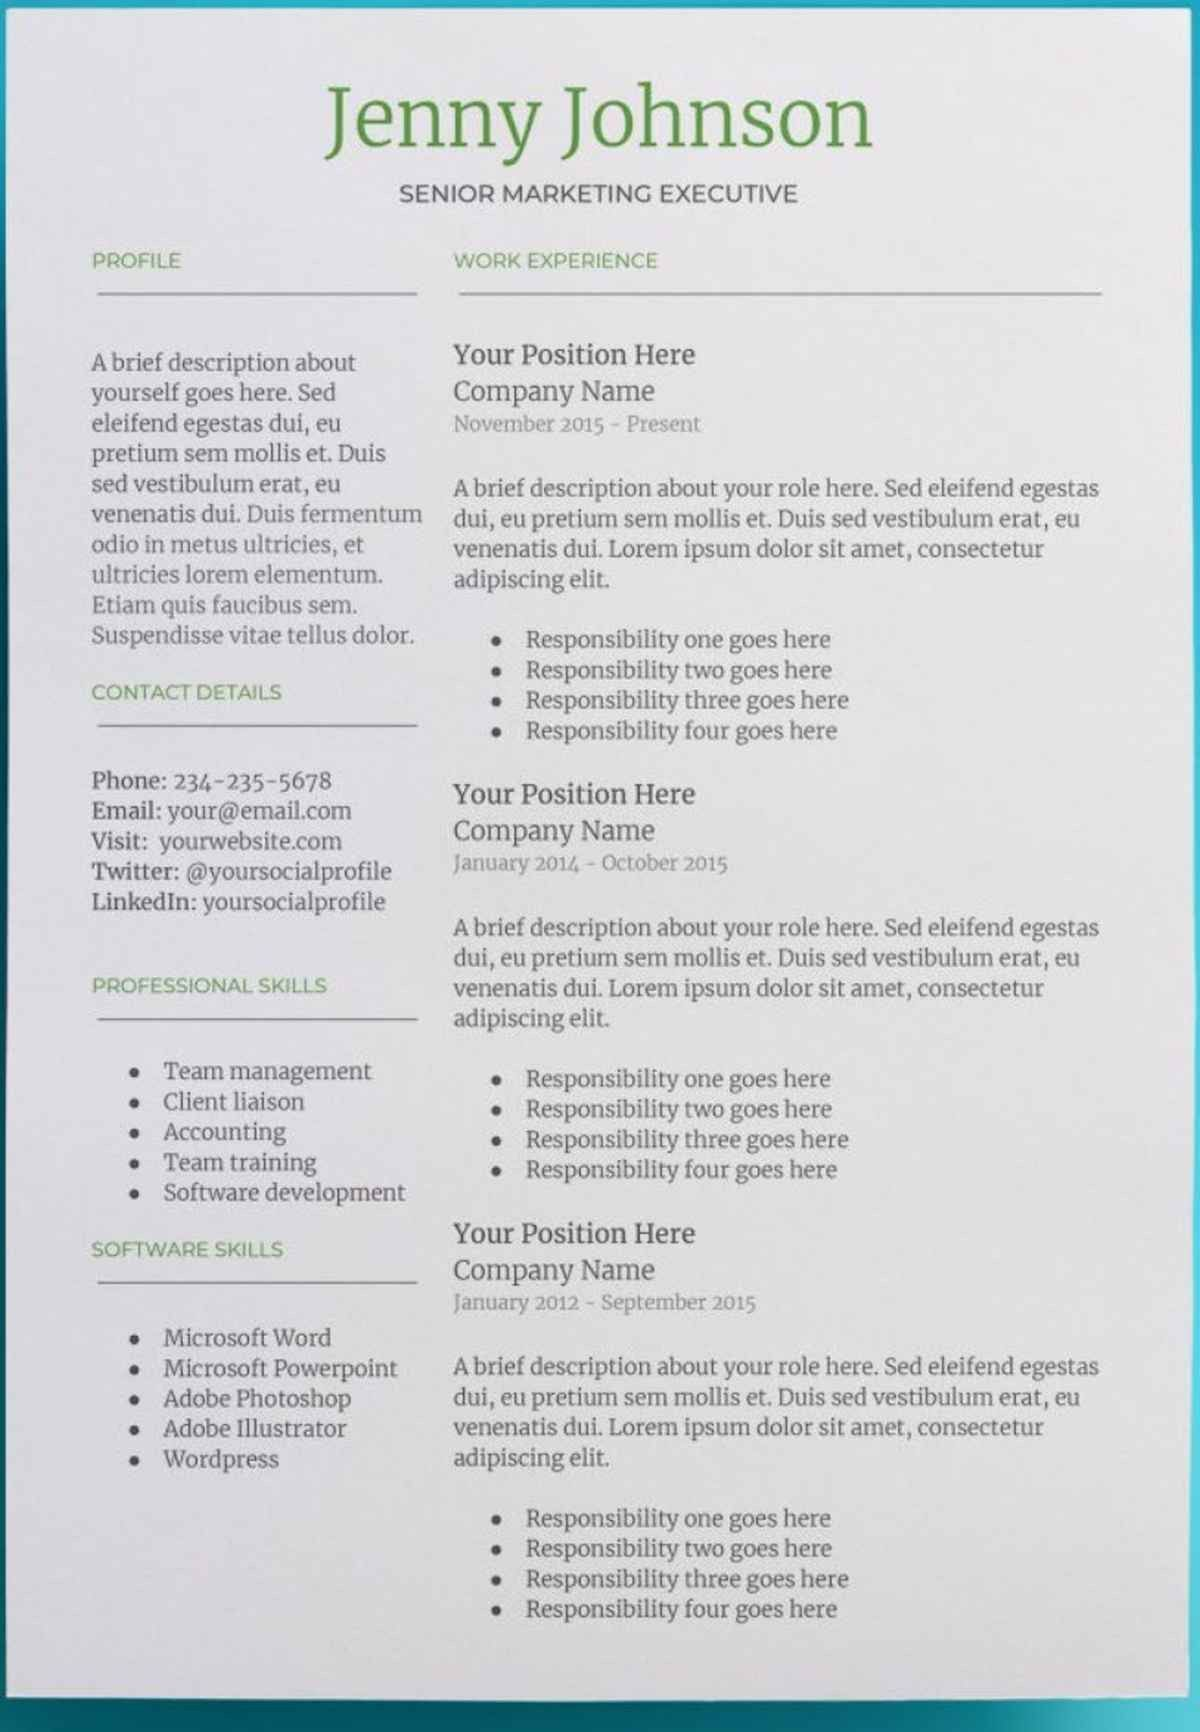 Free Resume Templates Google Docs Luxury 30 Google Docs